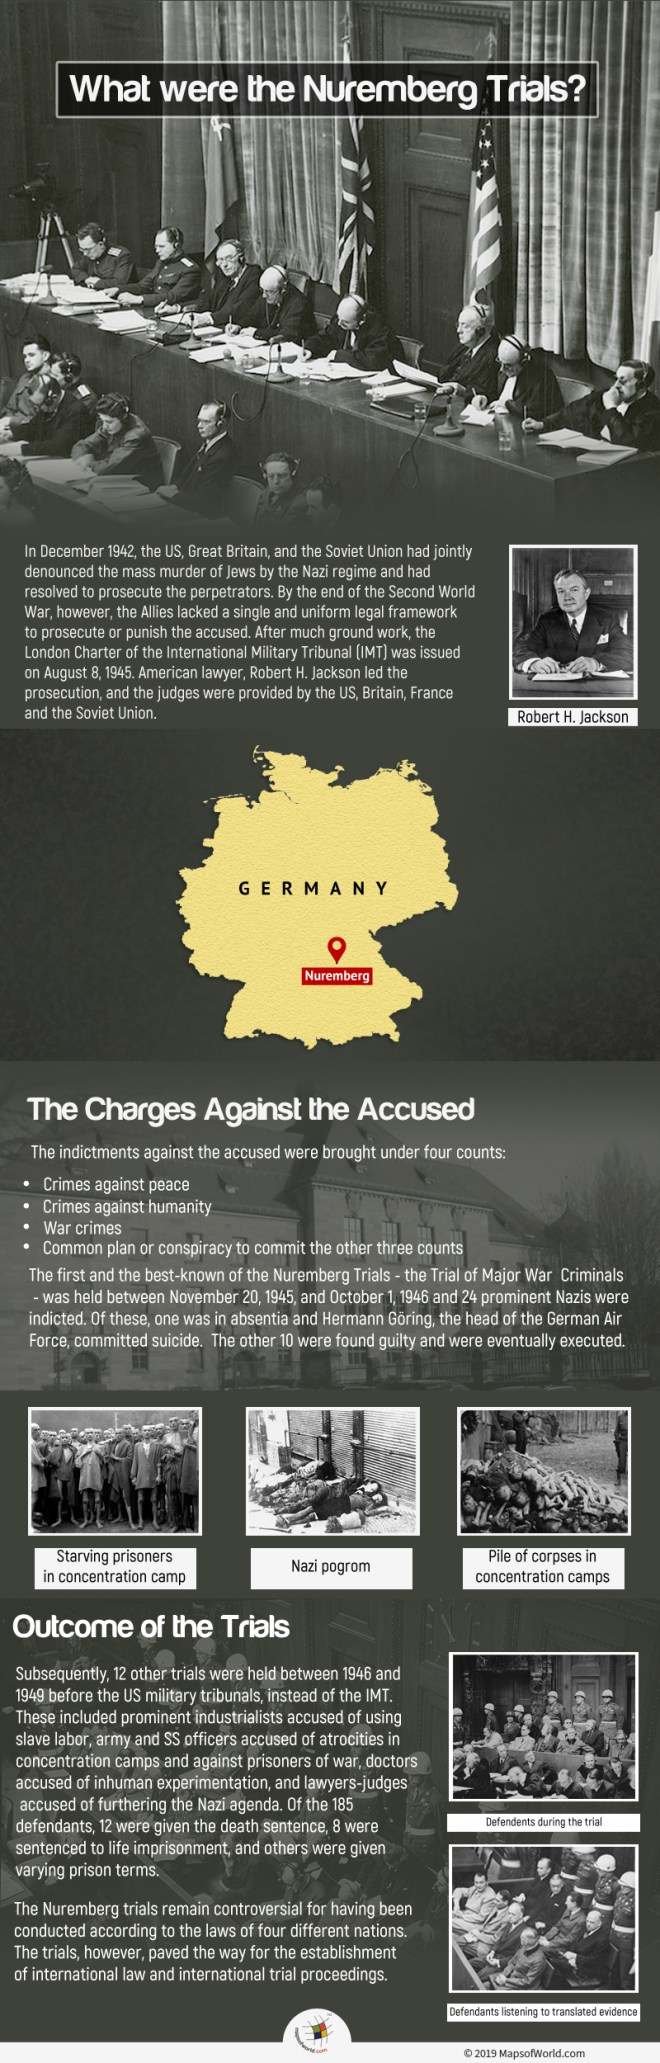 Infographic Giving Details of The Nuremberg Trials